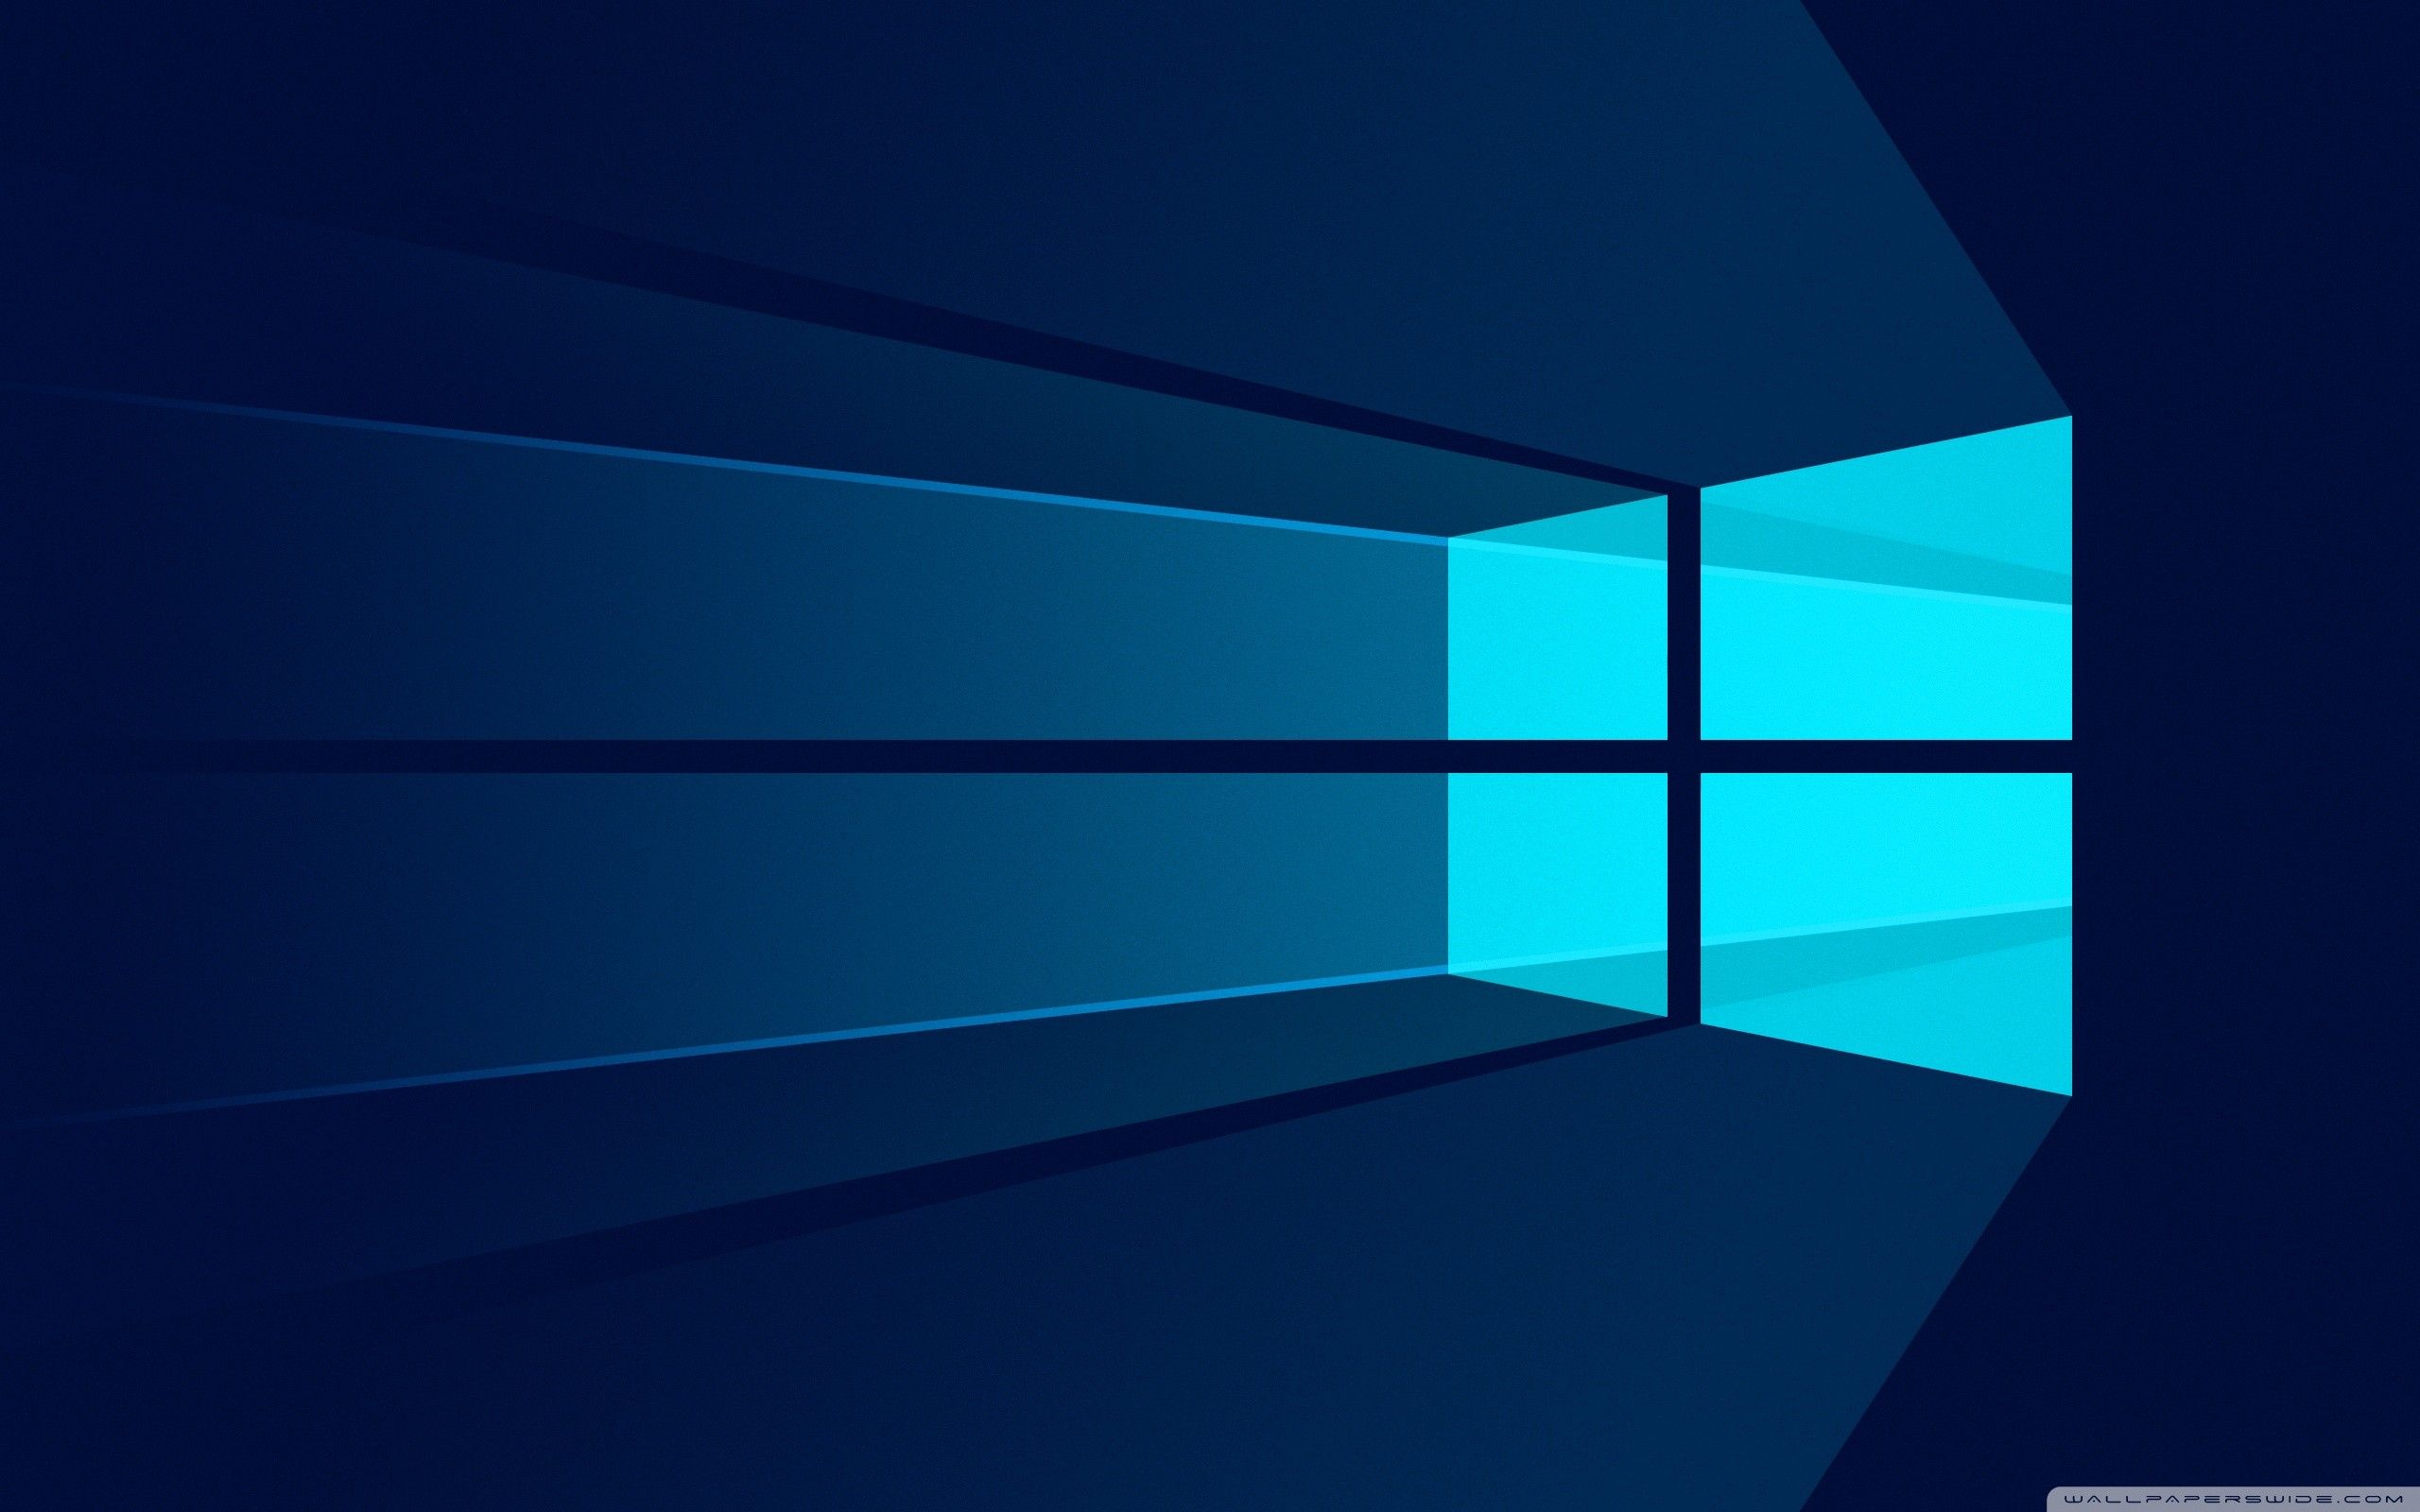 25 Windows 10 Background 1920x1080 2k Awesome Images In 2020 Windows Wallpaper Microsoft Wallpaper Wallpaper Windows 10